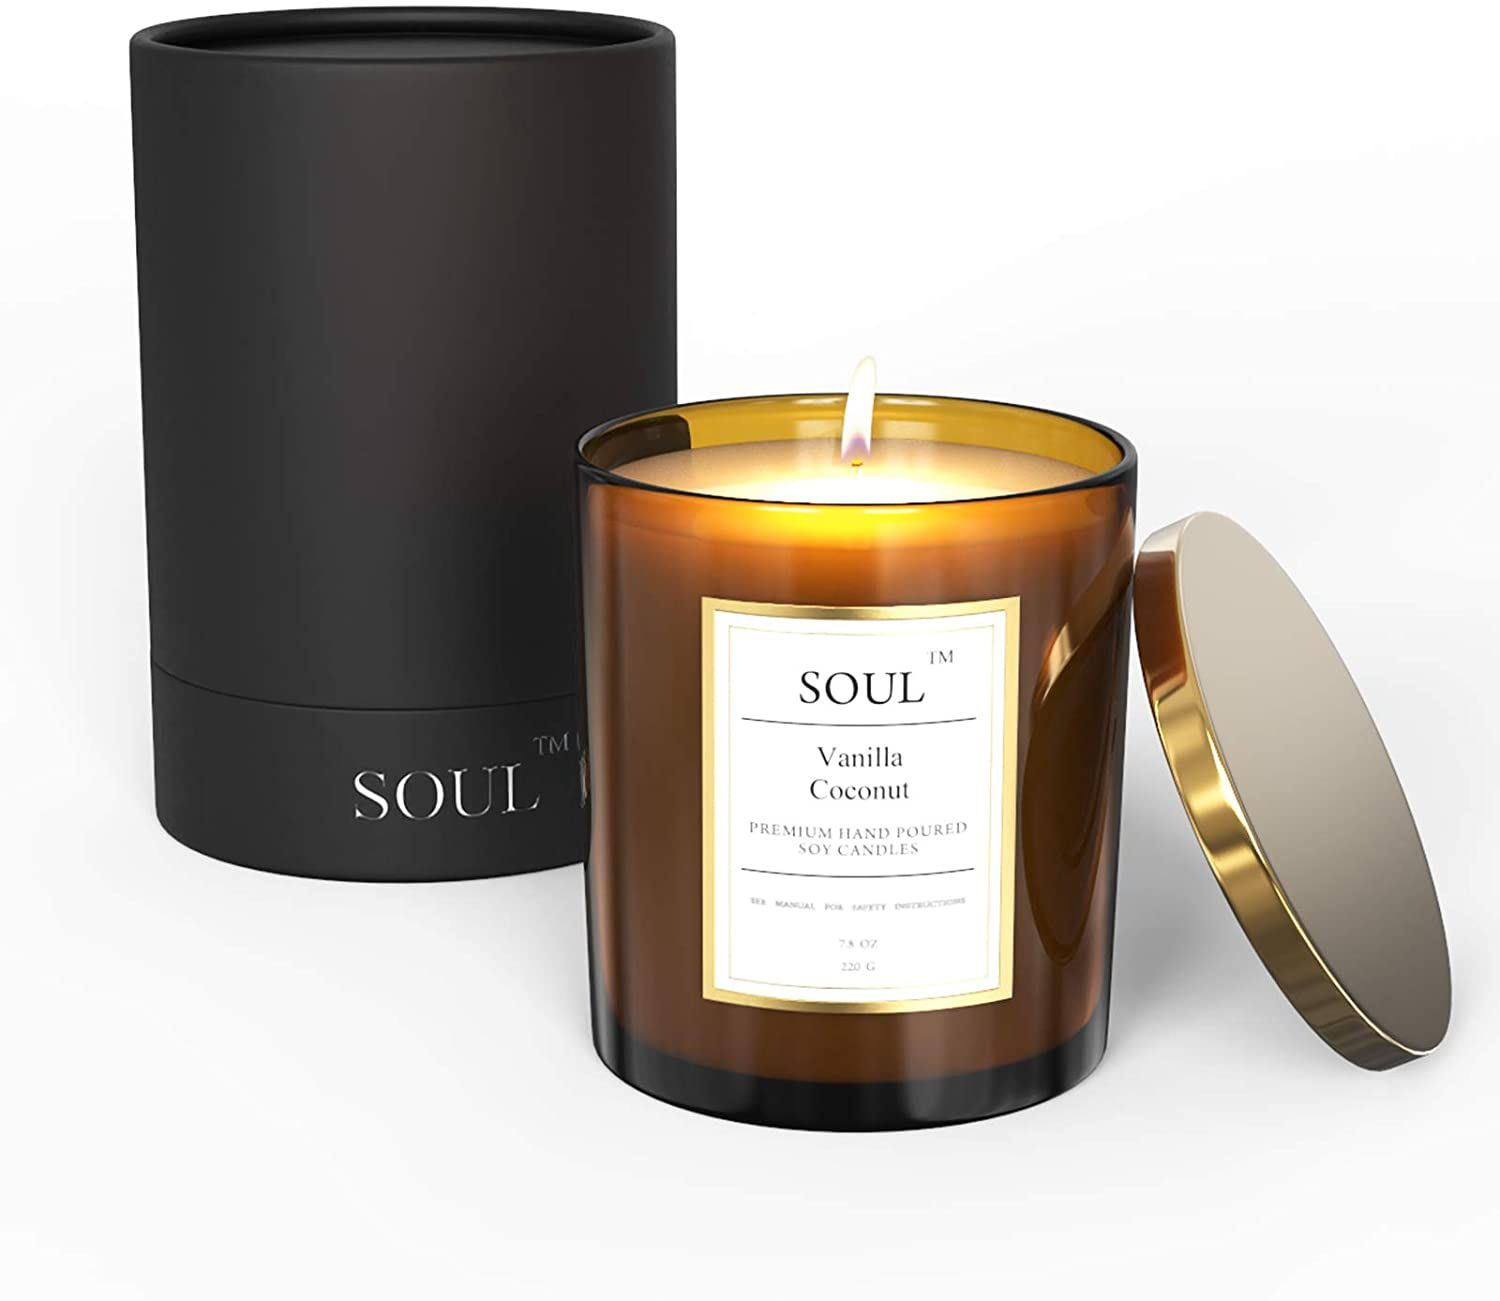 Soul Vanilla Coconut Aromatherapy Candle